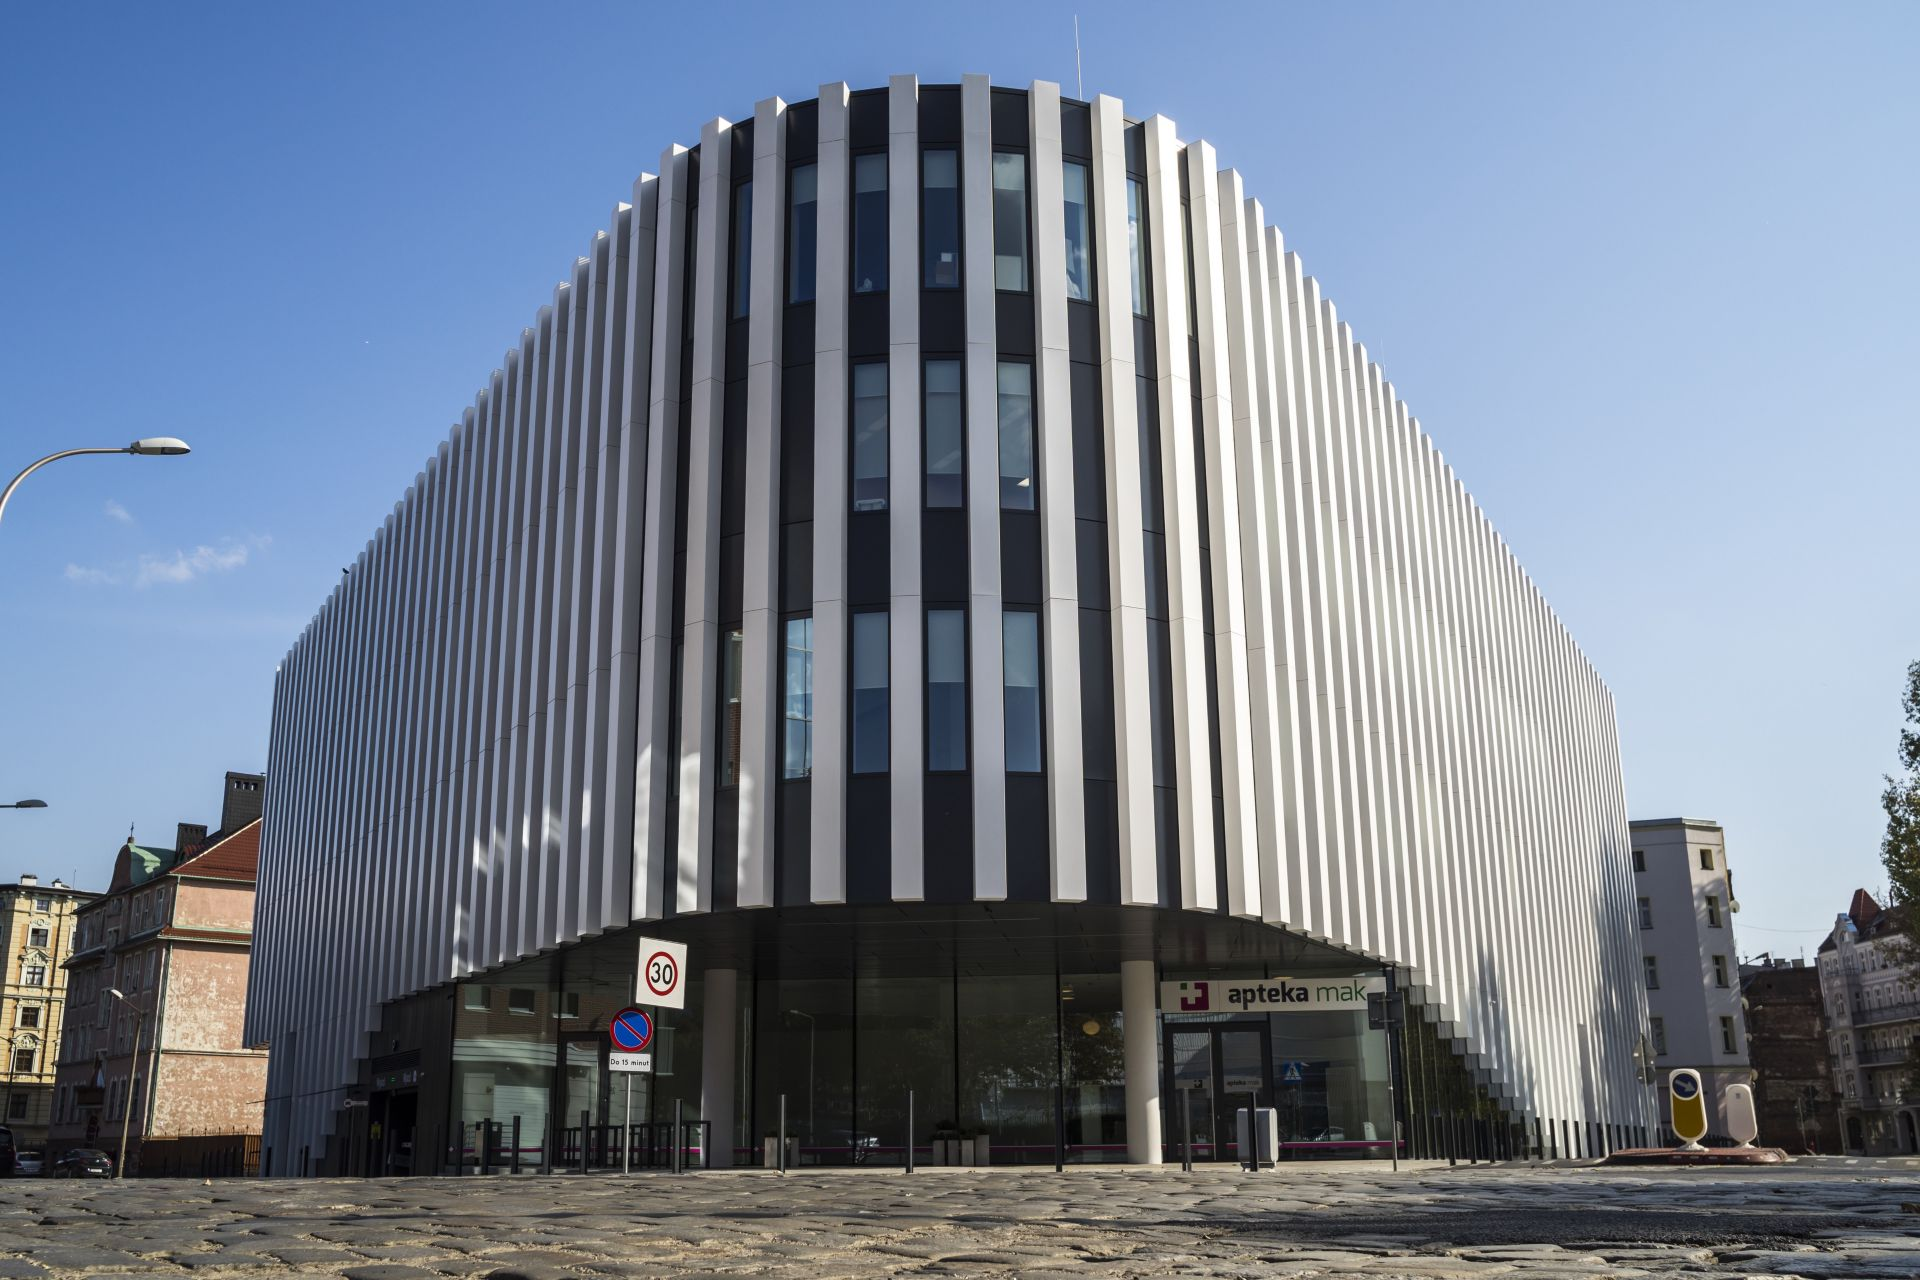 Medicus Center Building in Wroclaw, Poland